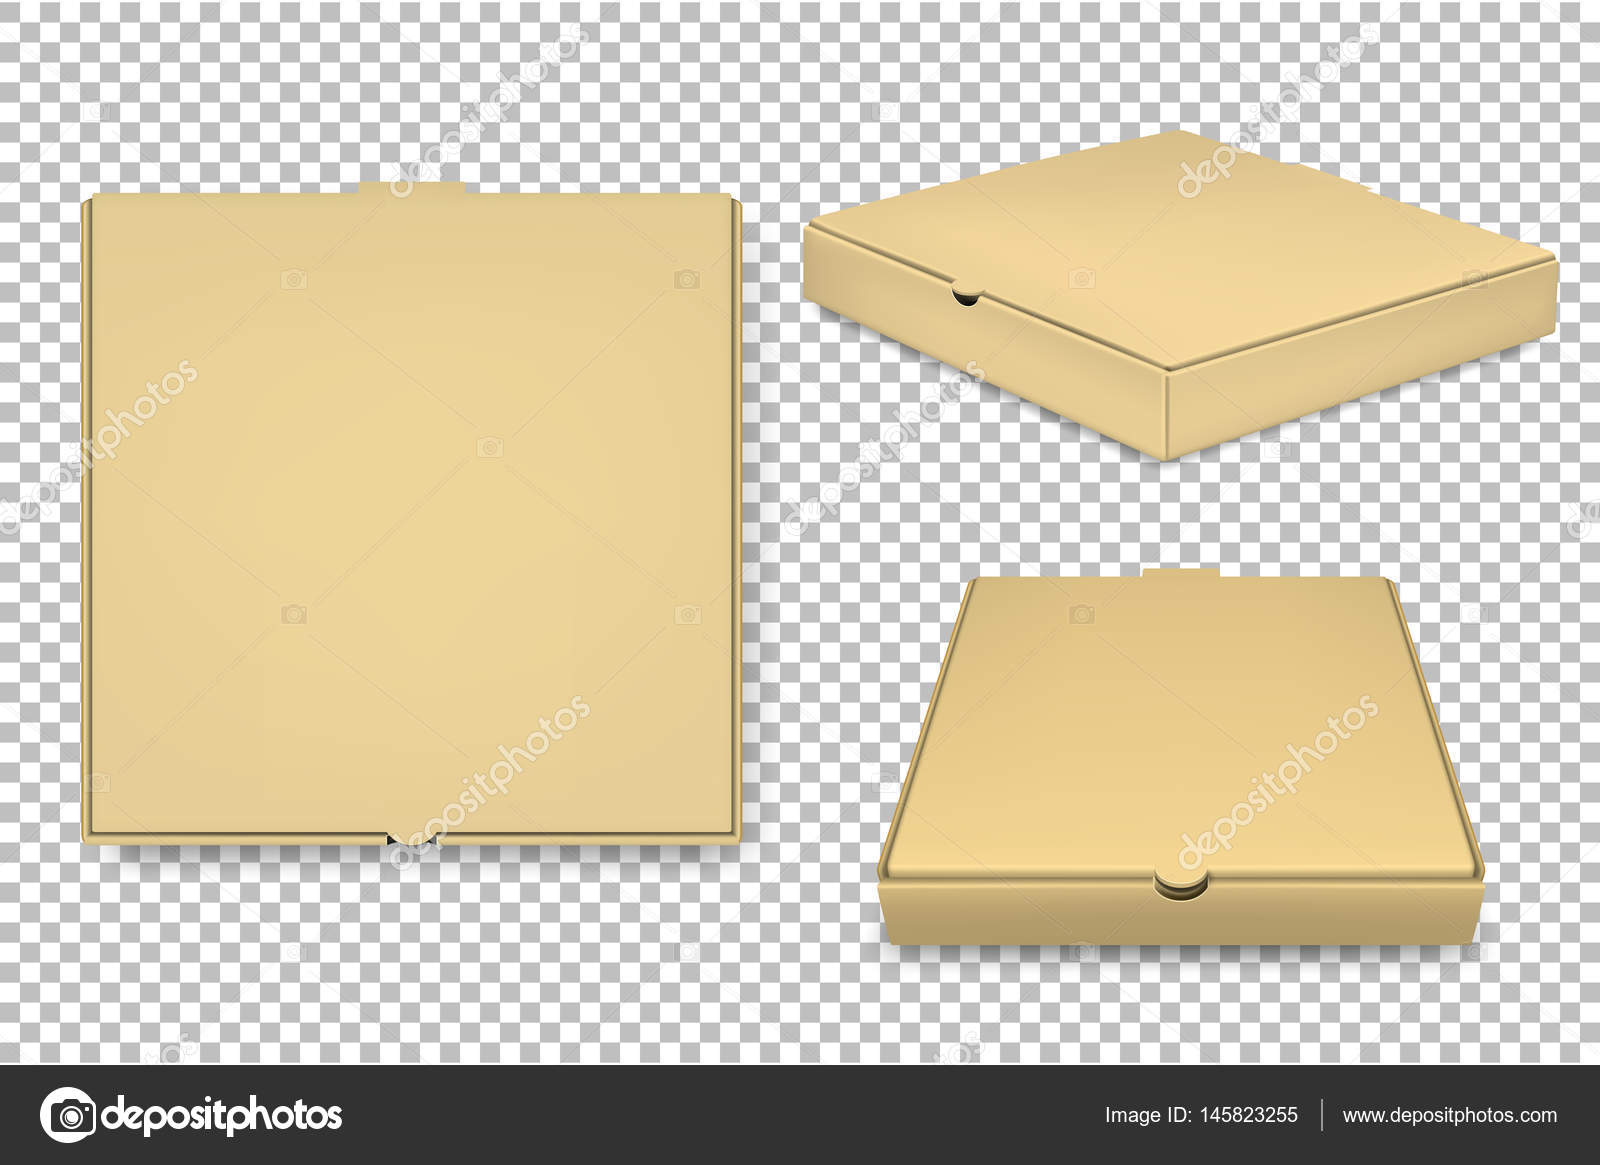 vector blank pizza box design template set isolated eps10 stock